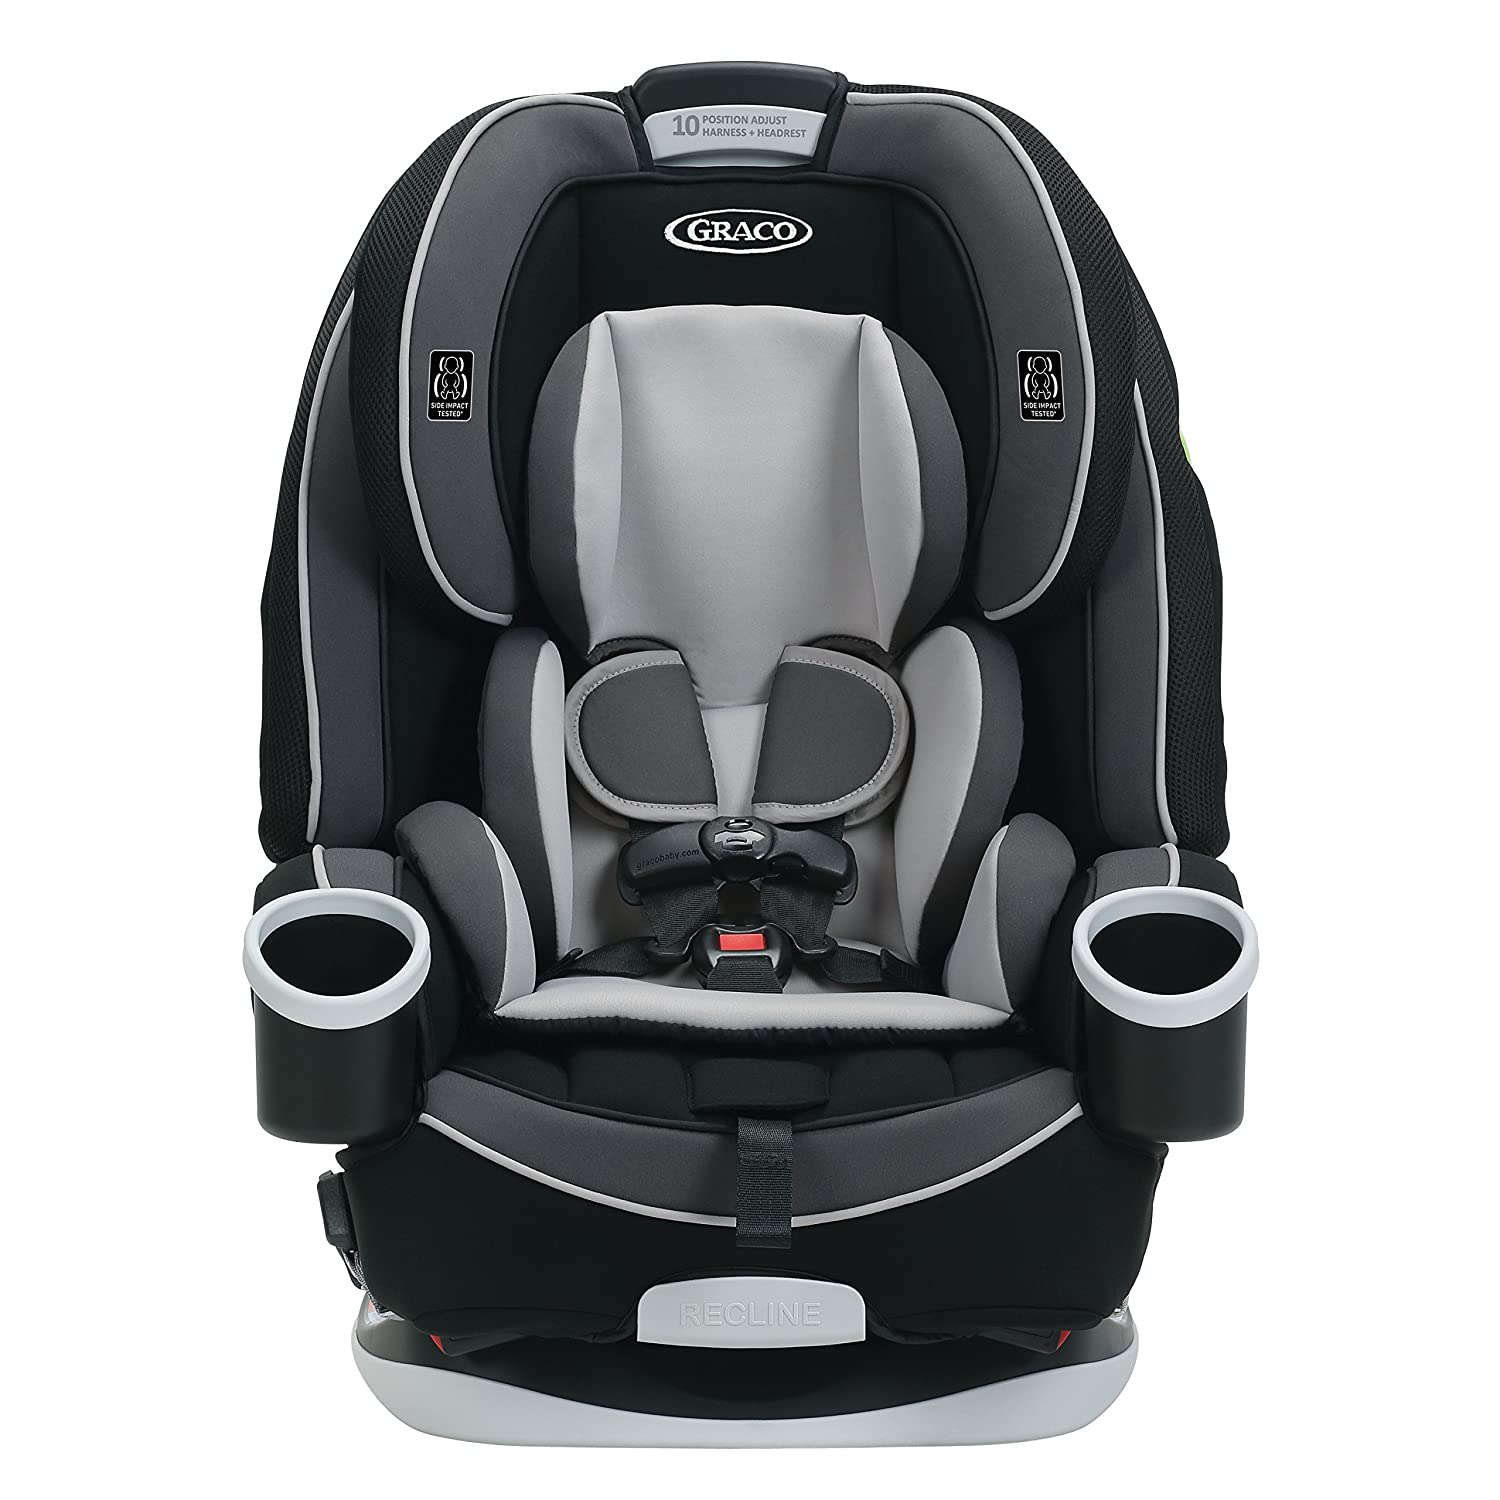 Graco 4ever All In 1 Convertible Car Seat Manual Elcho Table border=